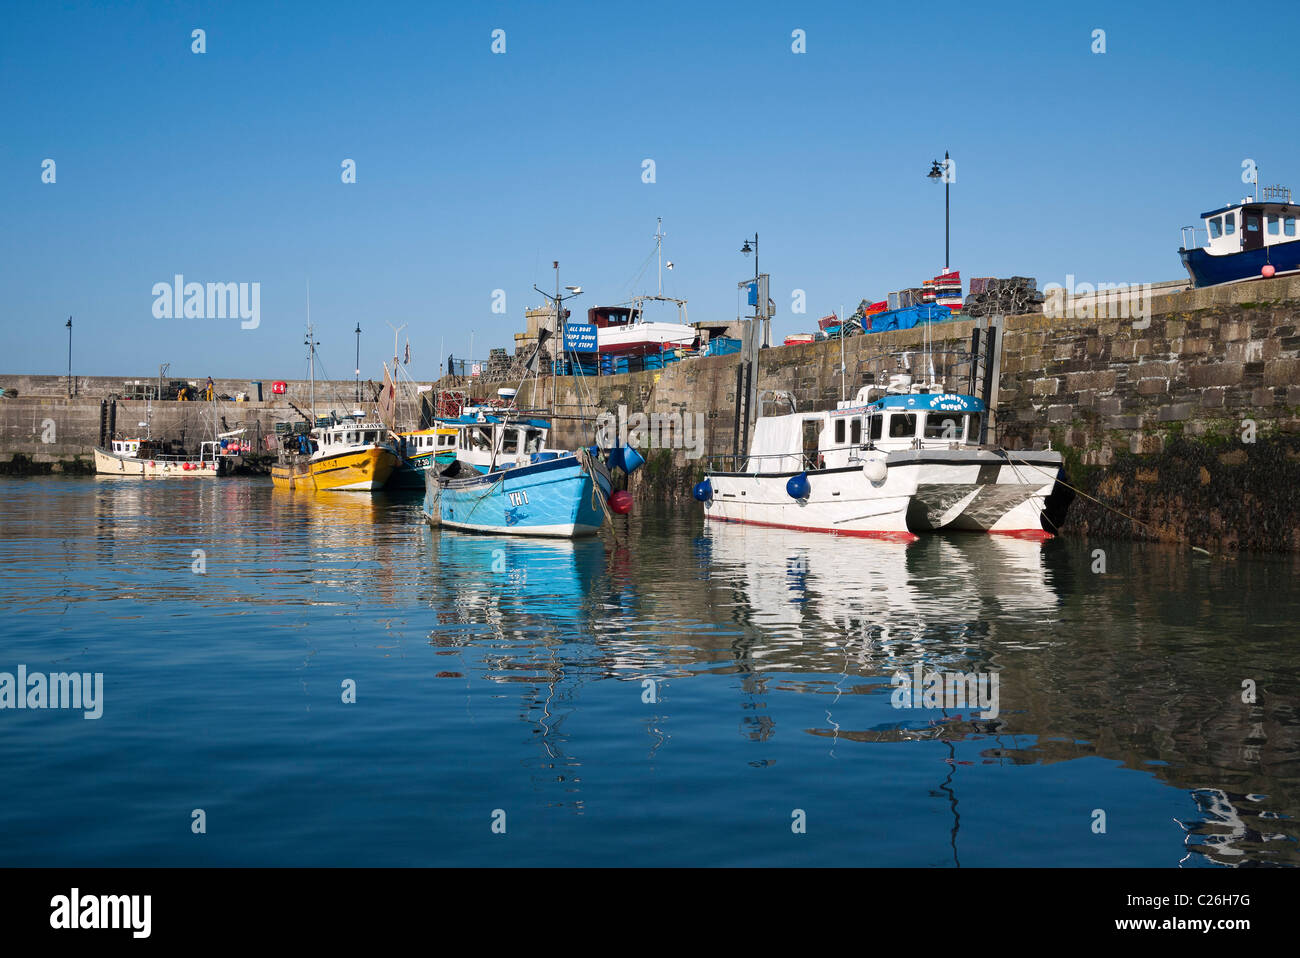 Fishing Boats in Newquay Harbour, Cornwall - Stock Image